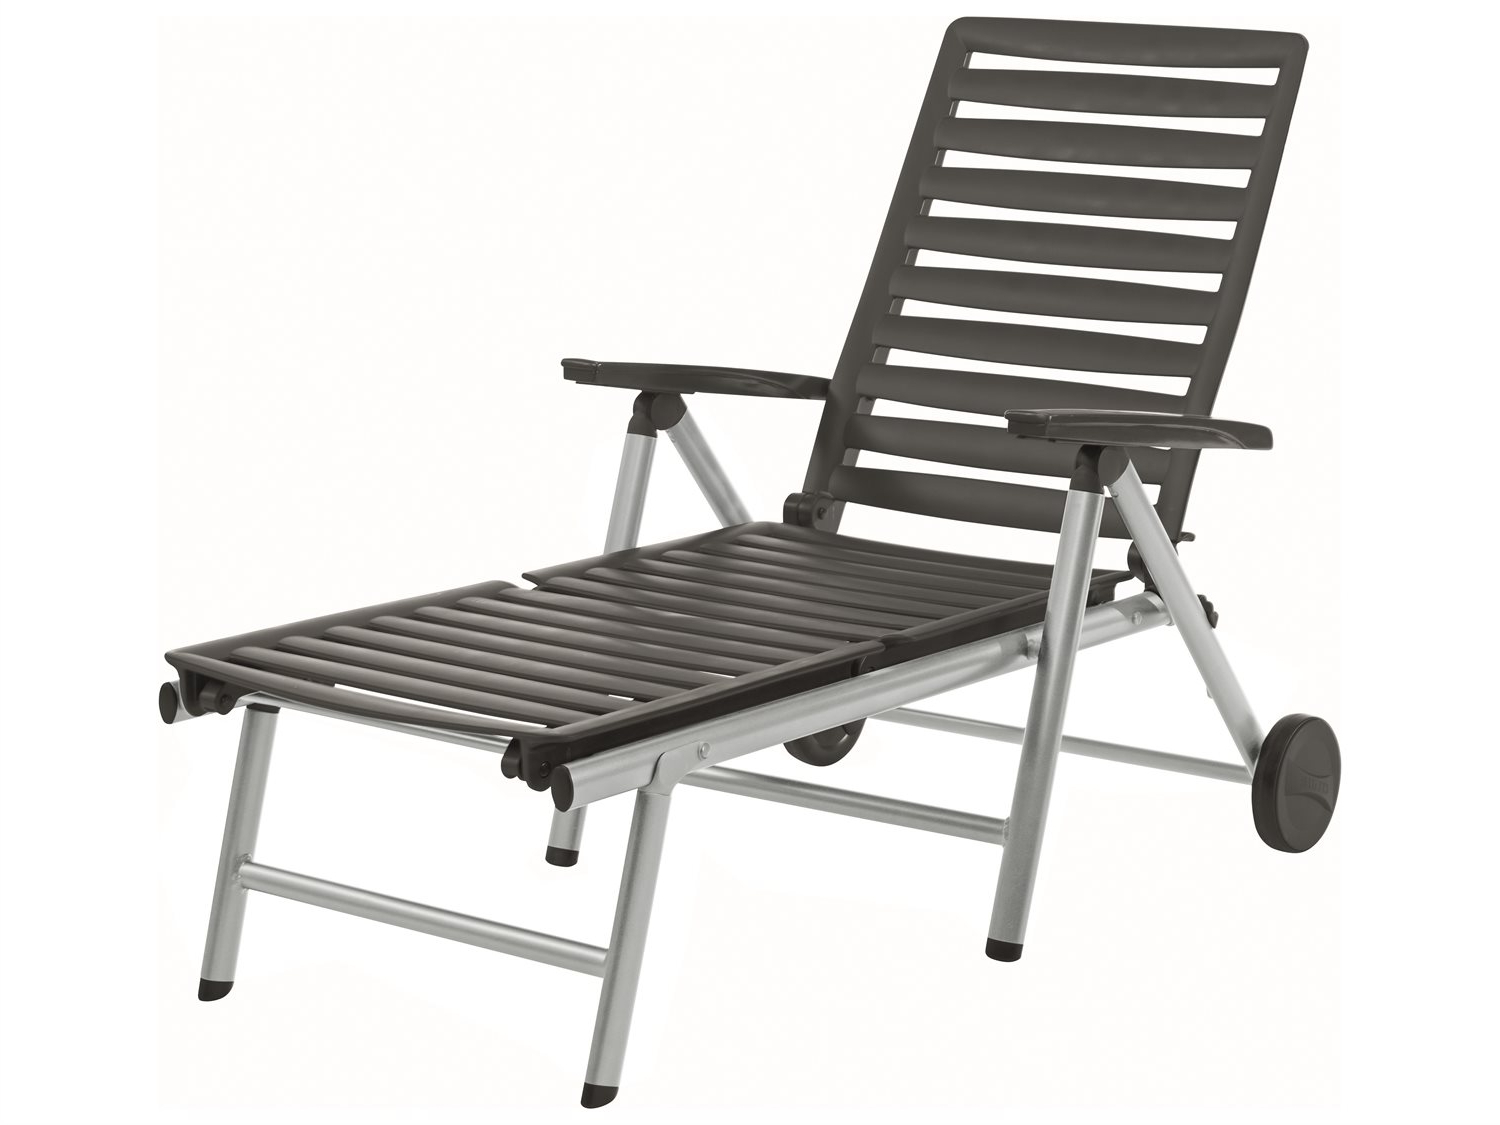 Kettler Wave Multi Position Chaise Lounge For Favorite Outdoor Multi Position Chaise Lounges (View 7 of 25)